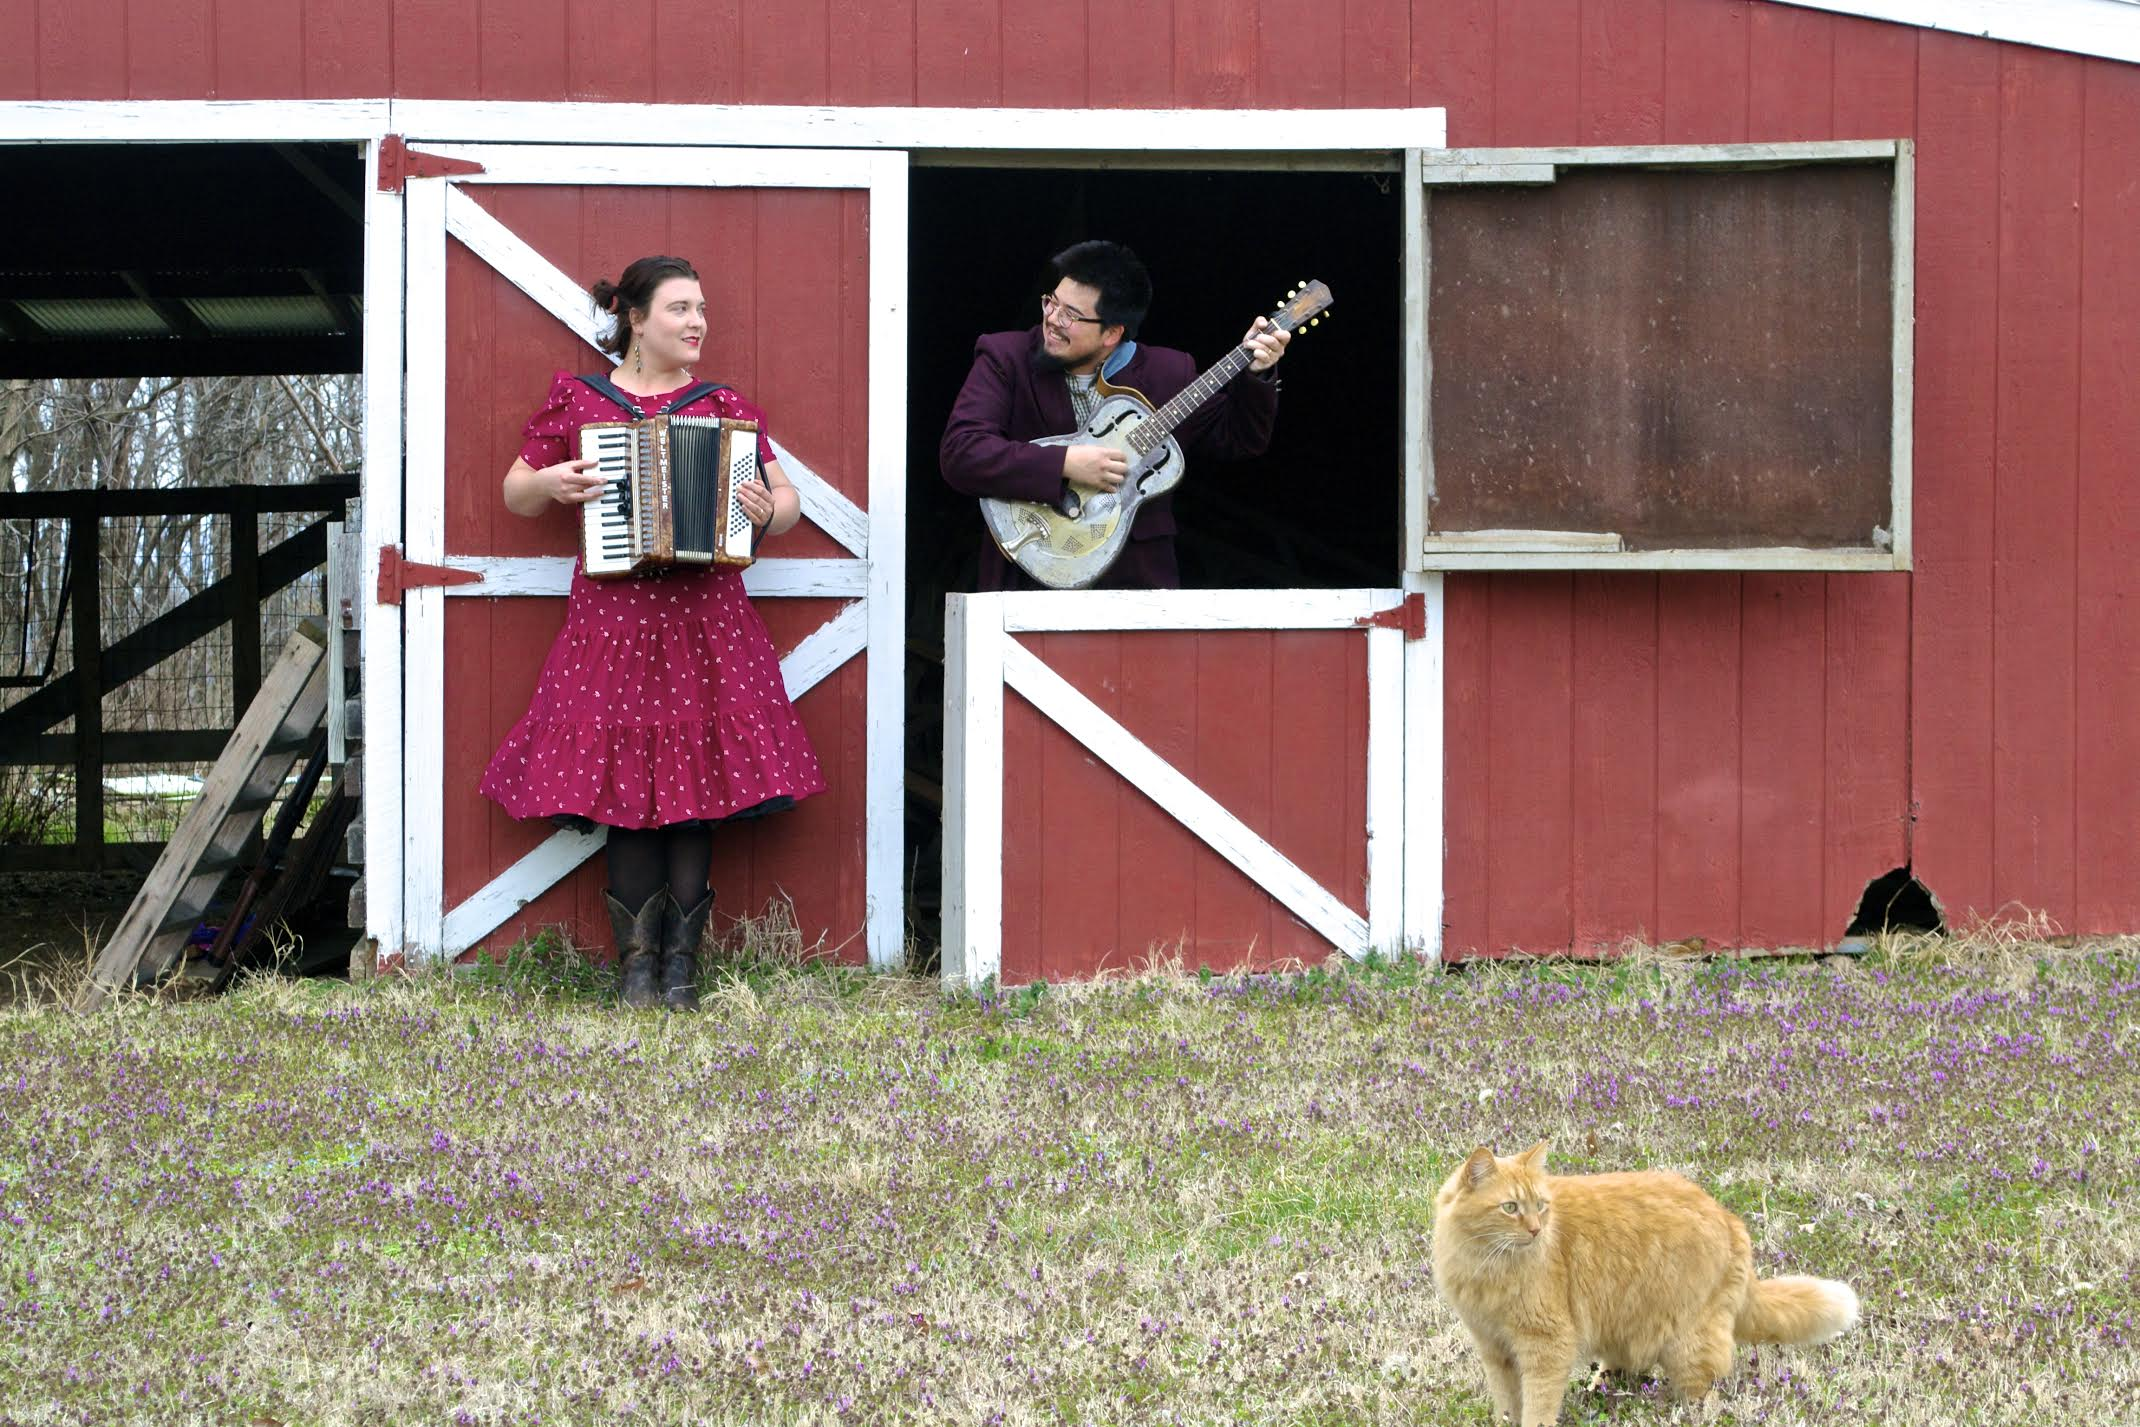 WATCH: The Lark and the Loon, 'Up on a Cloud'